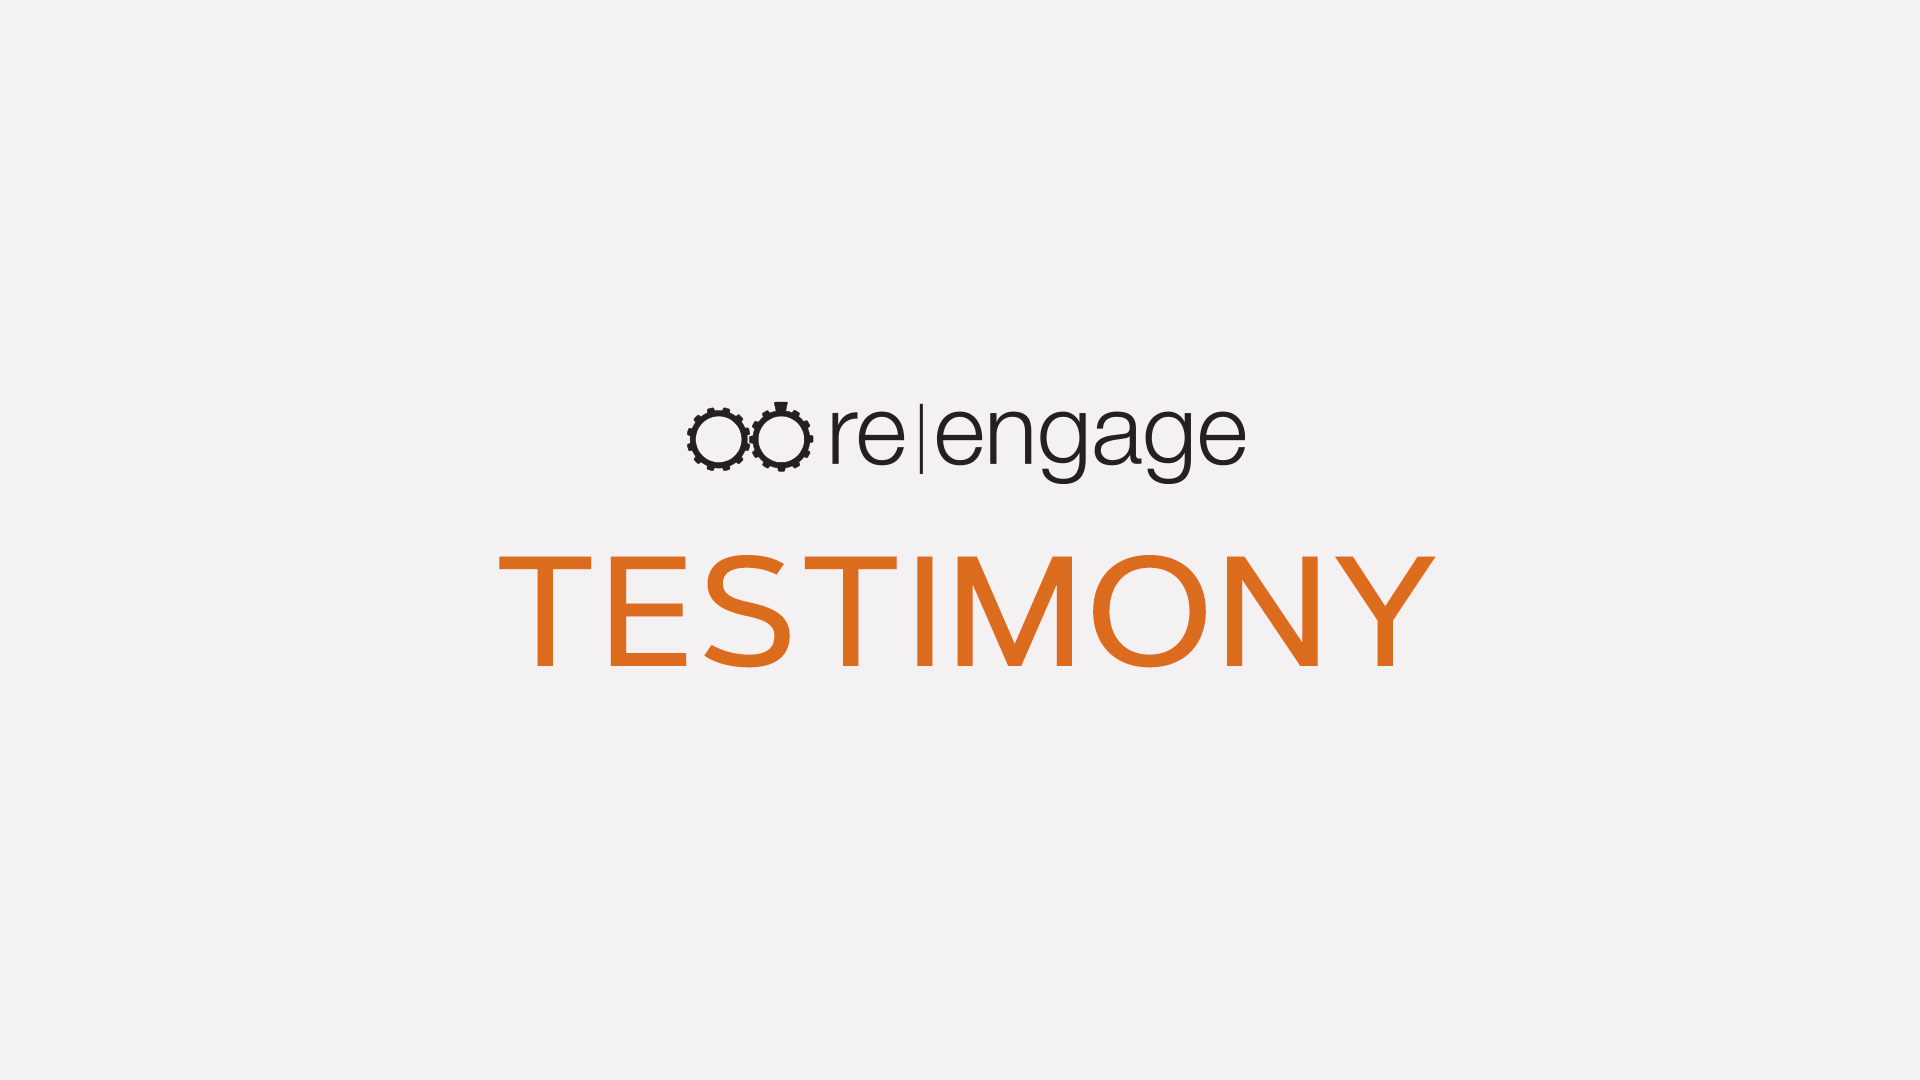 Testimony - John and Debbie Wingfield